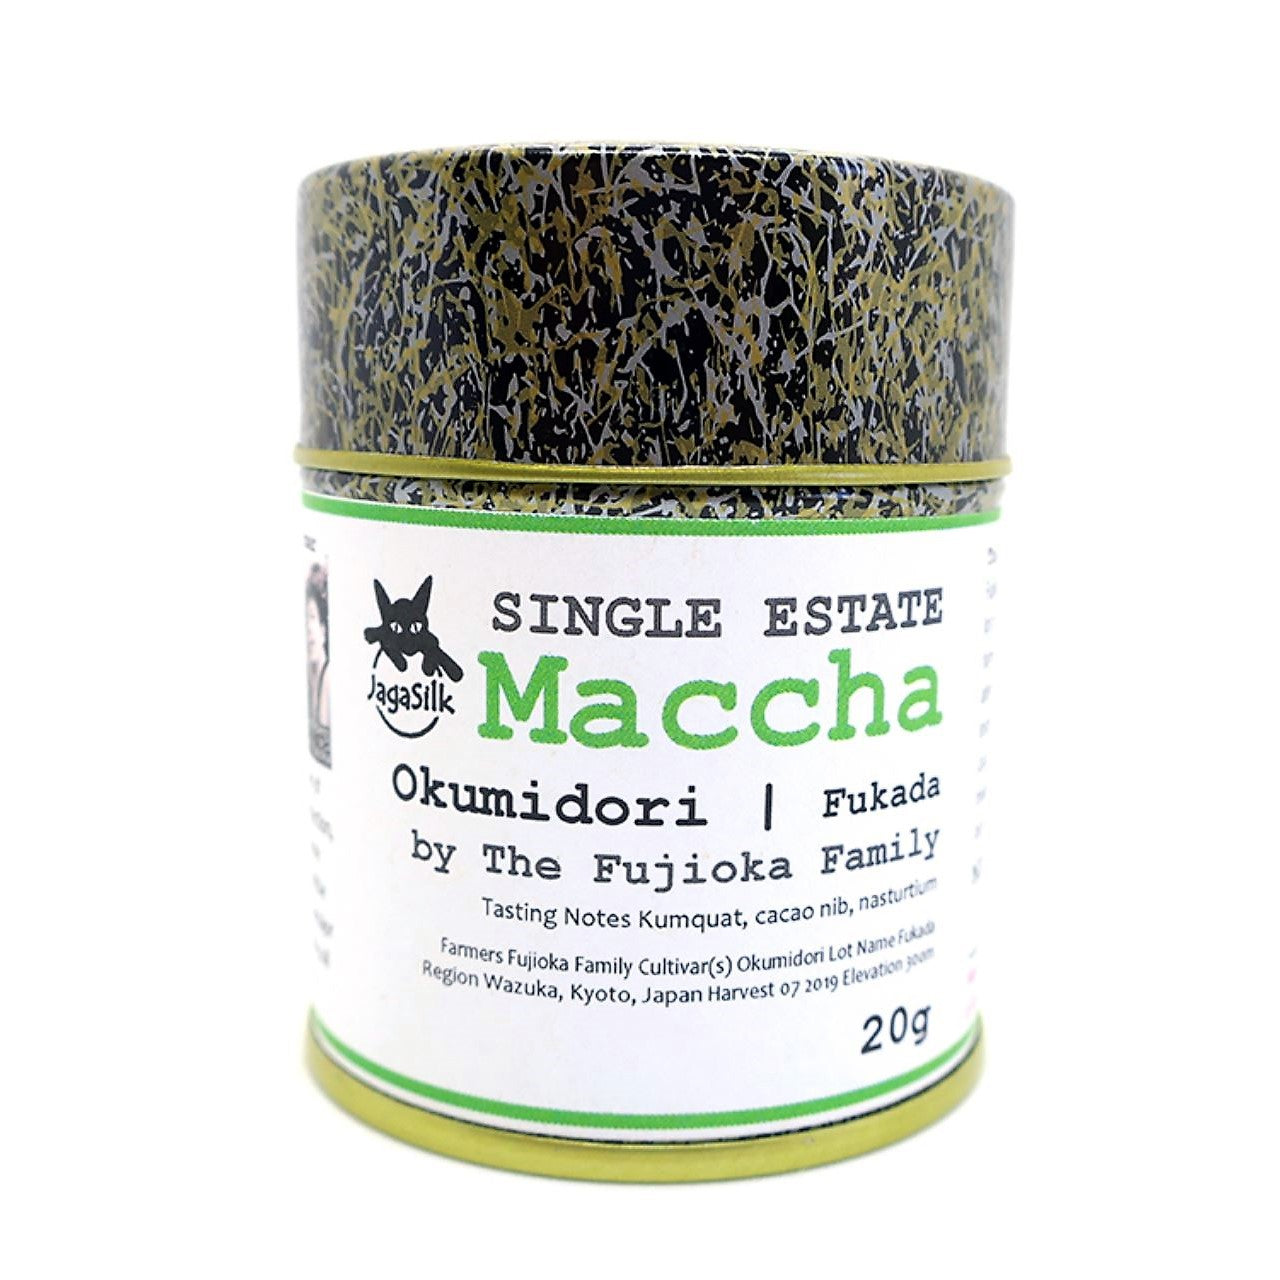 Single Estate Maccha in Tin with Green Accents